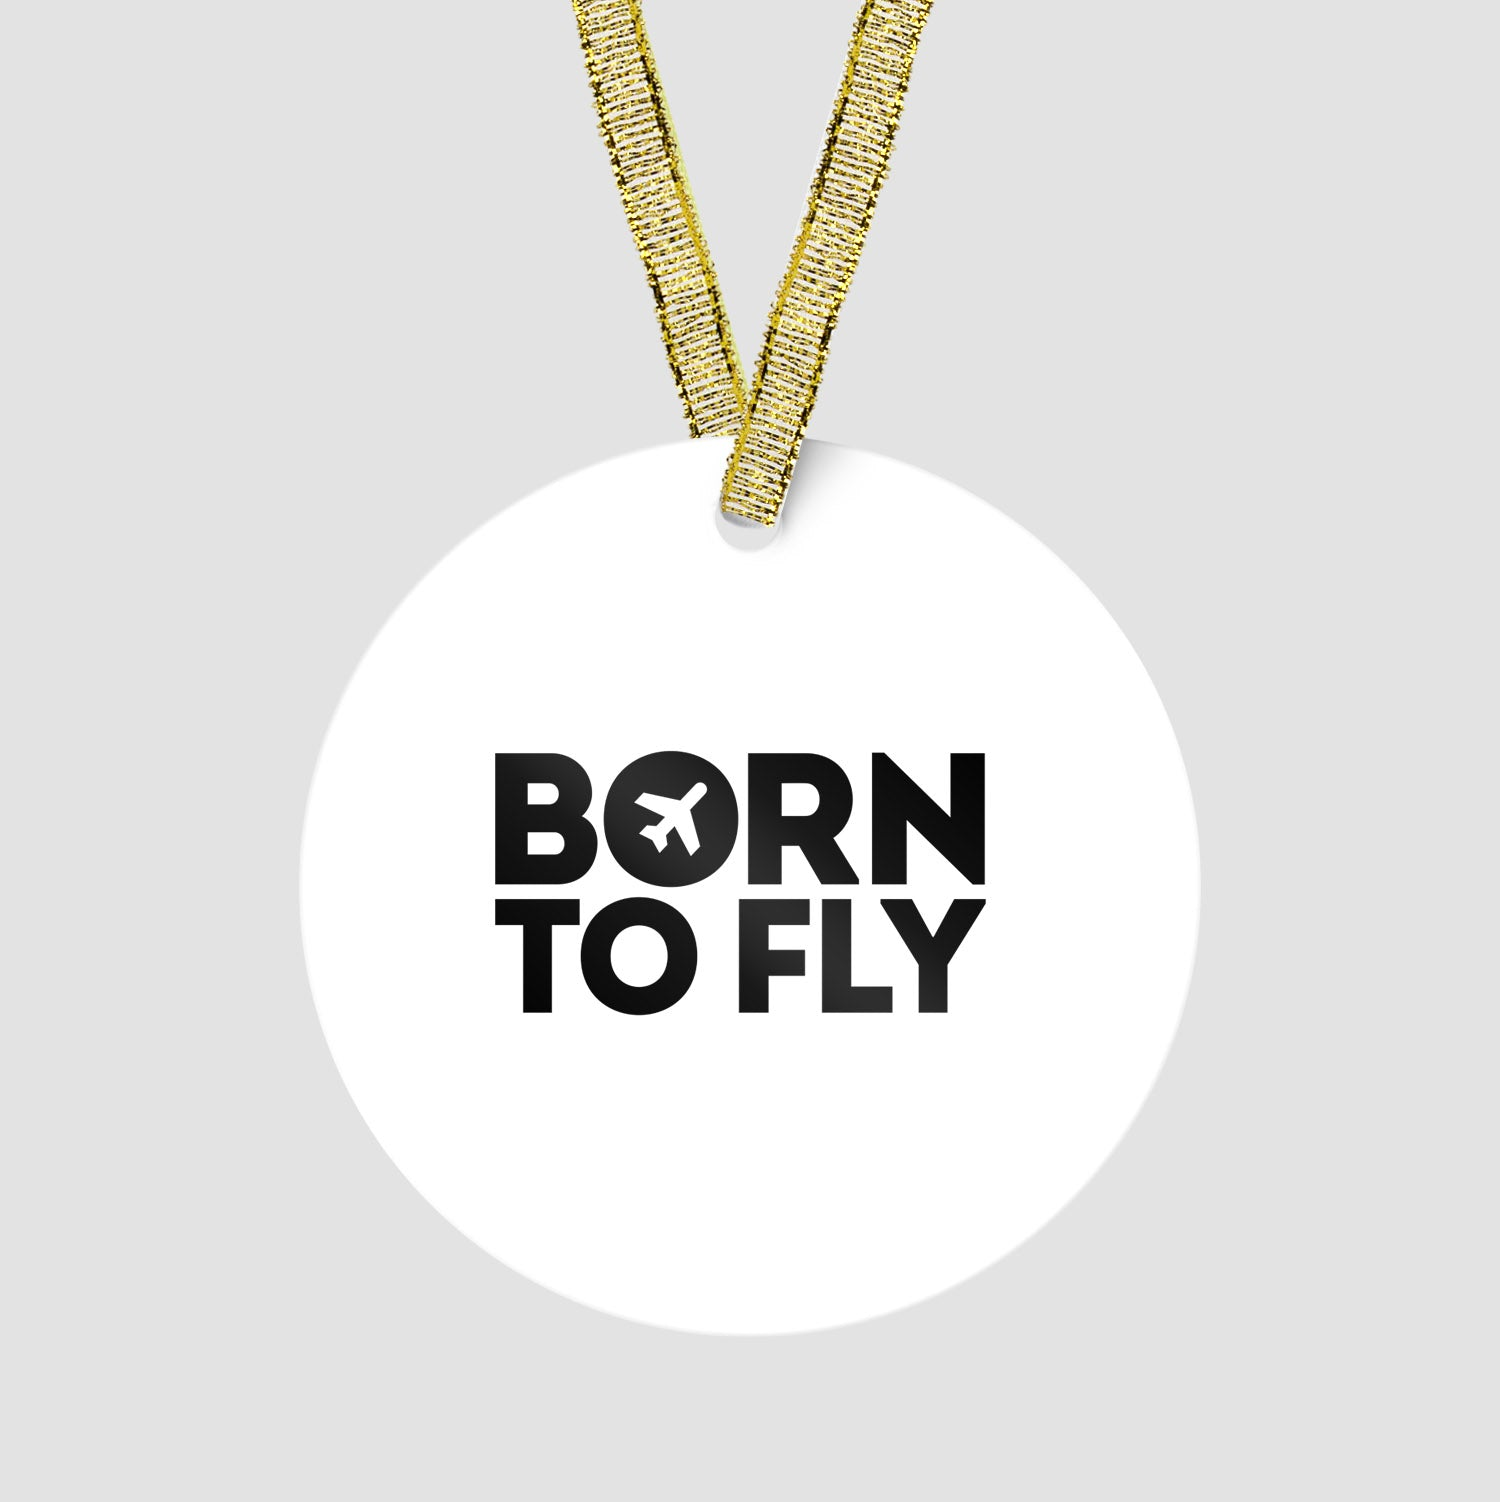 Born To Fly - Ornament - Airportag